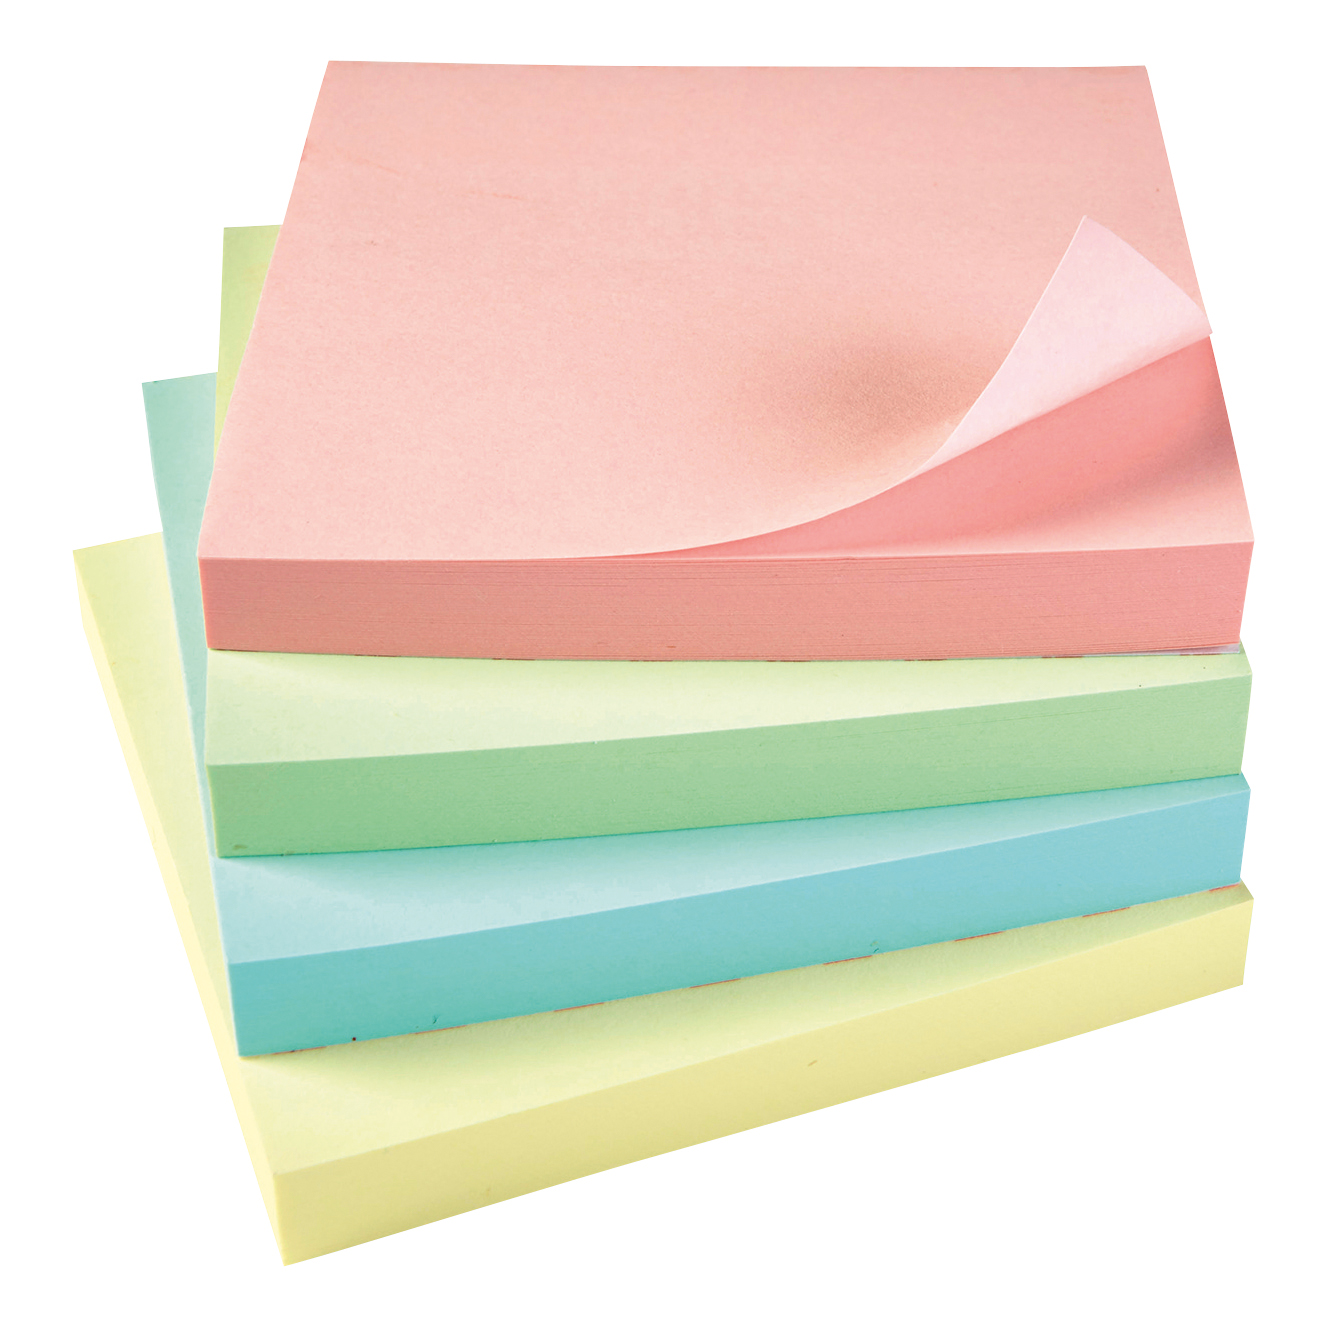 Coloured 5 Star Office Re-Move Notes Repositionable Pastel Pad of 100 Sheets 76x76mm Assorted [Pack 12]